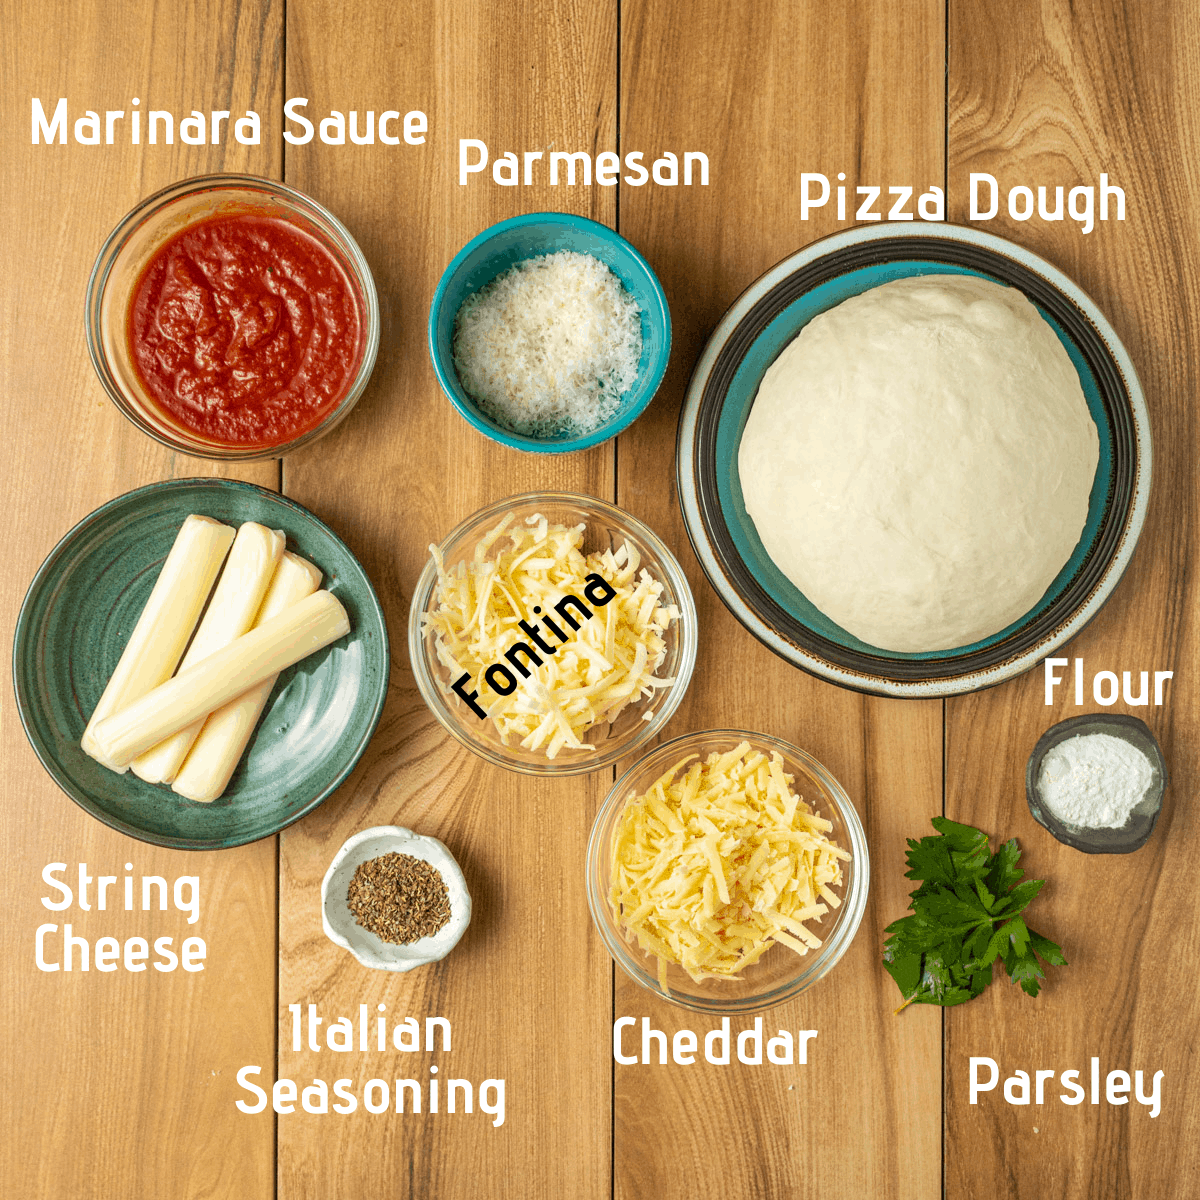 Raw ingredients laid out on a wood surface. Marinara sauce, parmesan, pizza dough, string cheese, fontina, flour, italian seasoning, cheddar and parsley